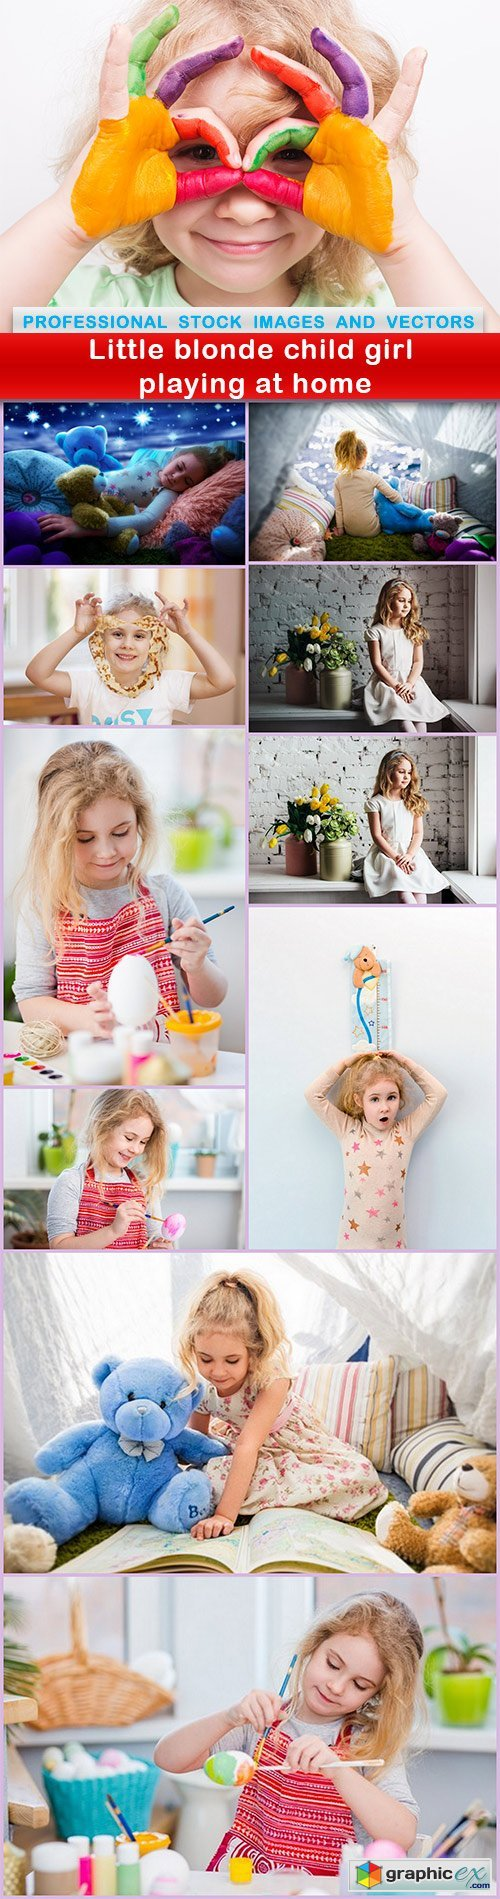 Little blonde child girl playing at home - 11 UHQ JPEG